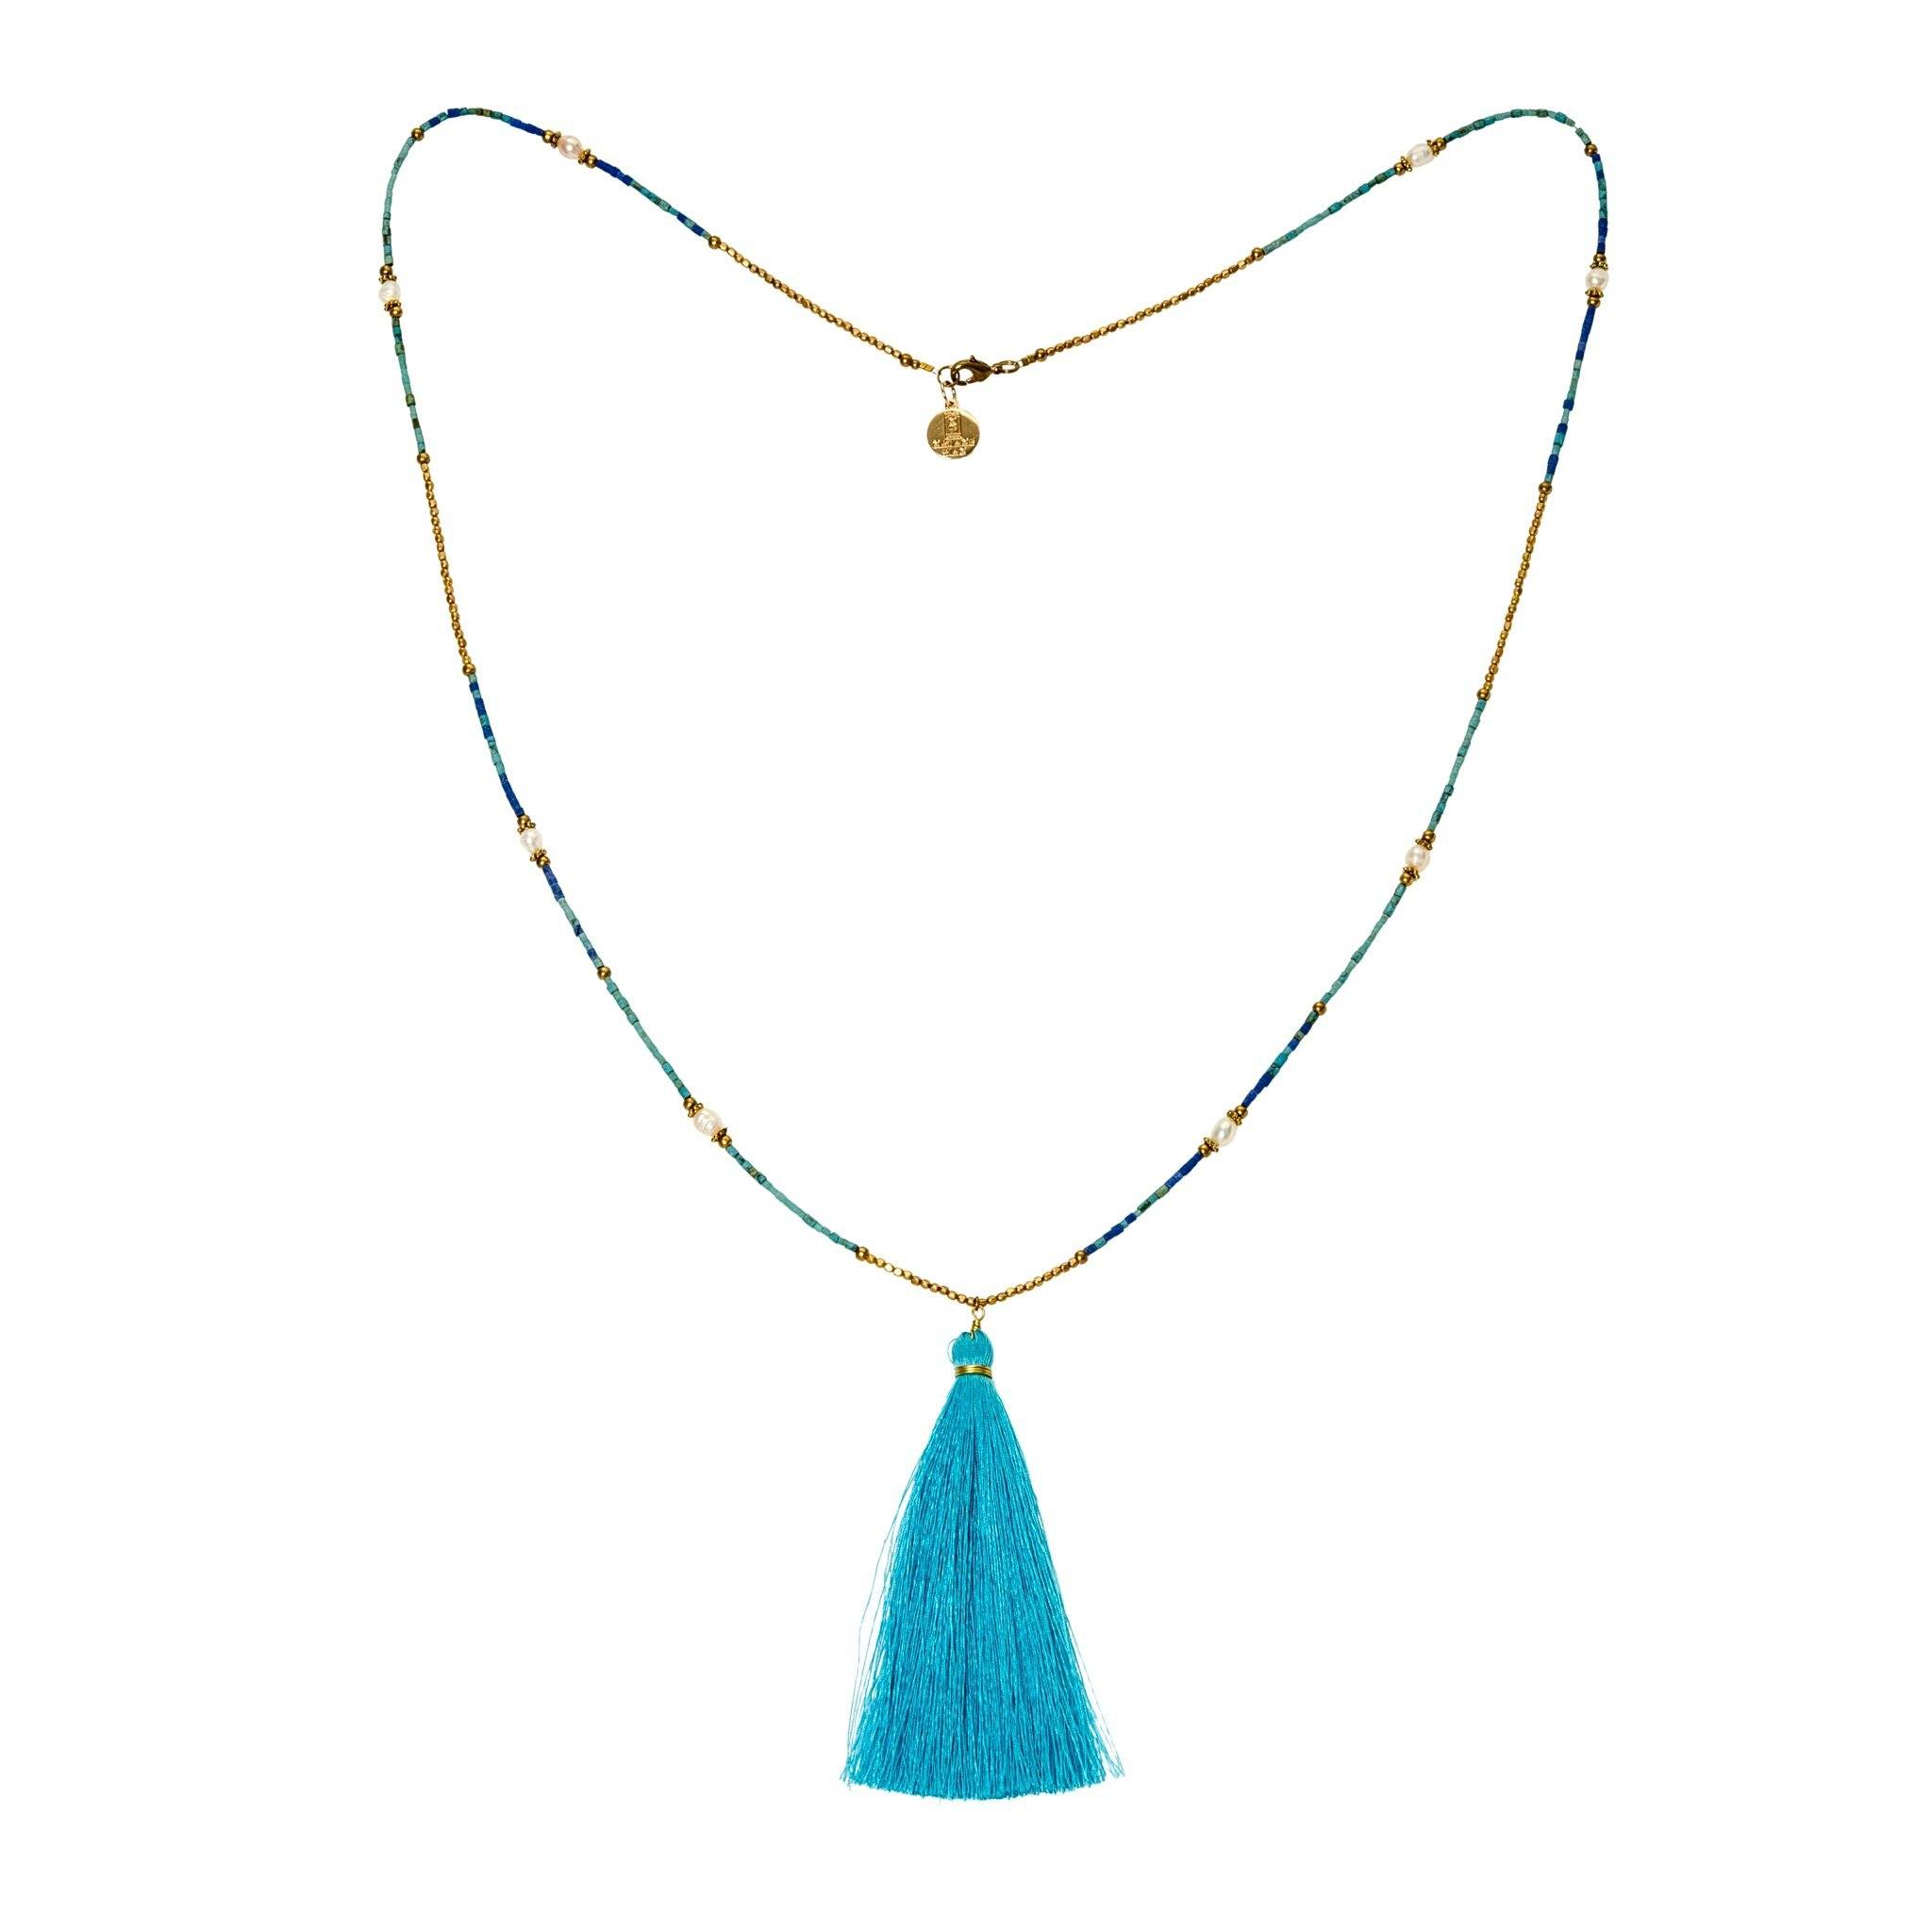 PLAYA blue tassel necklace - MadamSiam